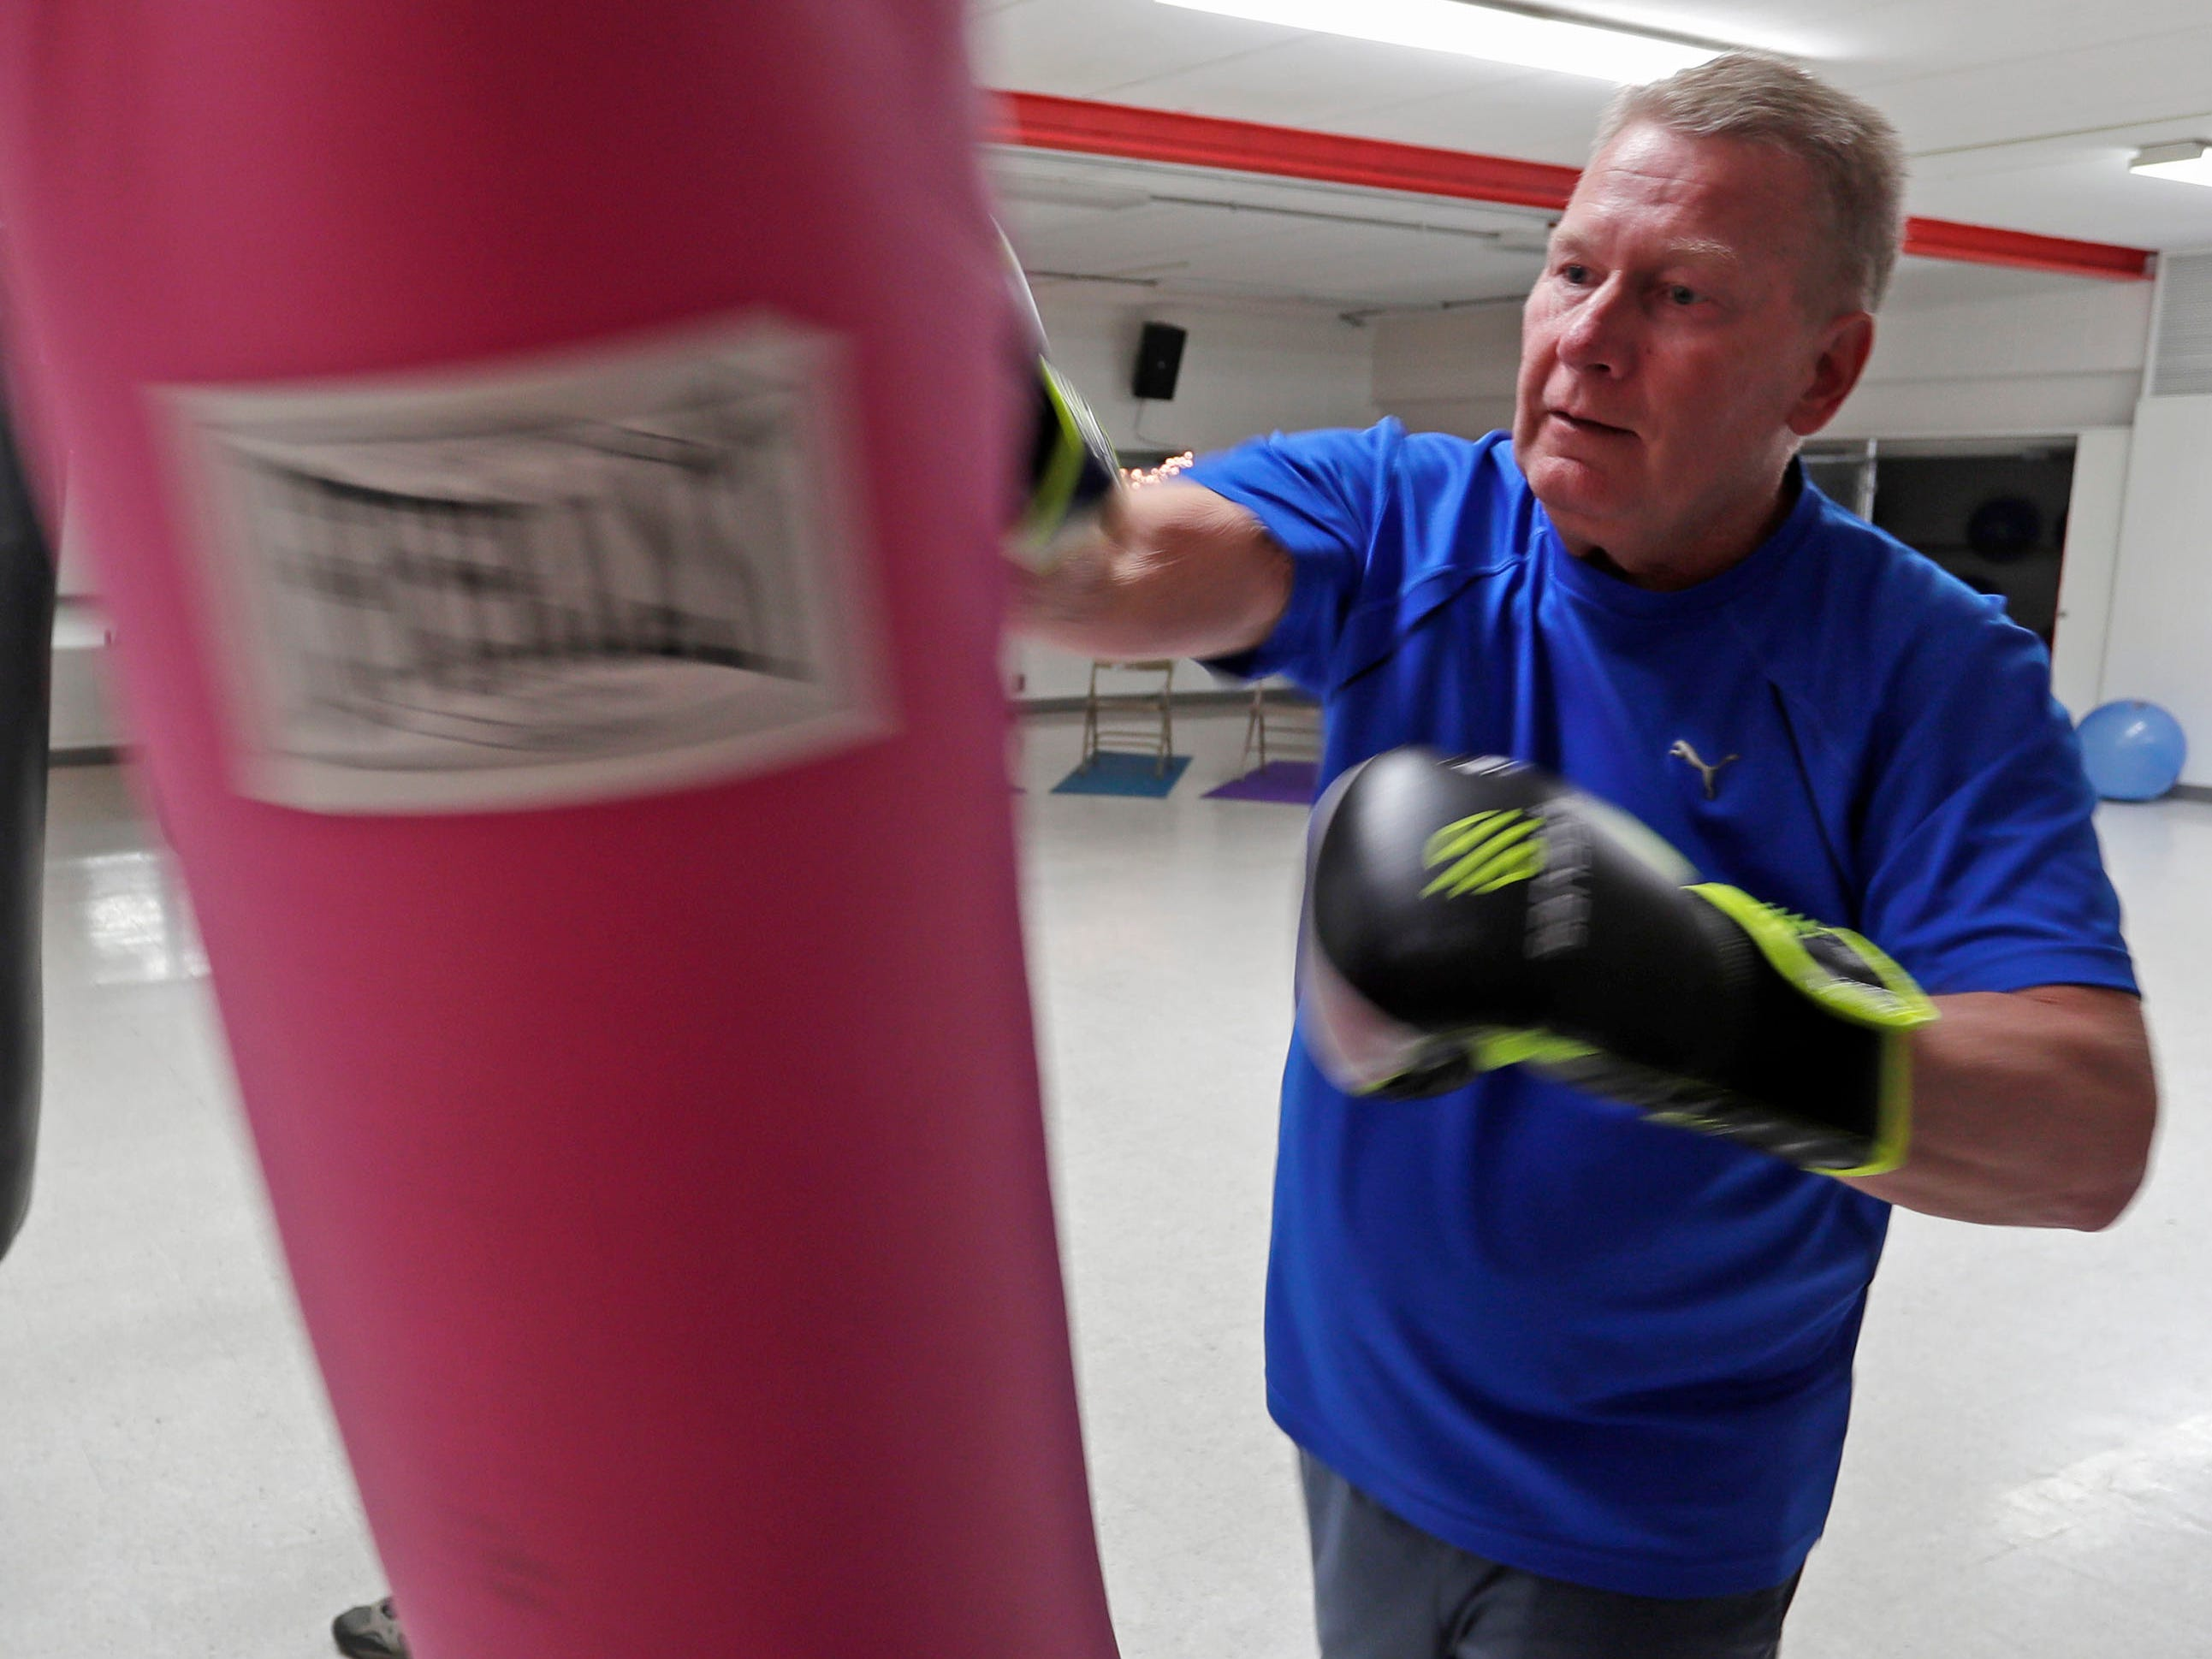 Kevin Mey of Kiel, Wis., practices his motor skills on a punching bag during the Fighting Parkinson's class at the Sheboygan YMCA, Thursday, March 21, 2019, in Sheboygan, Wis.